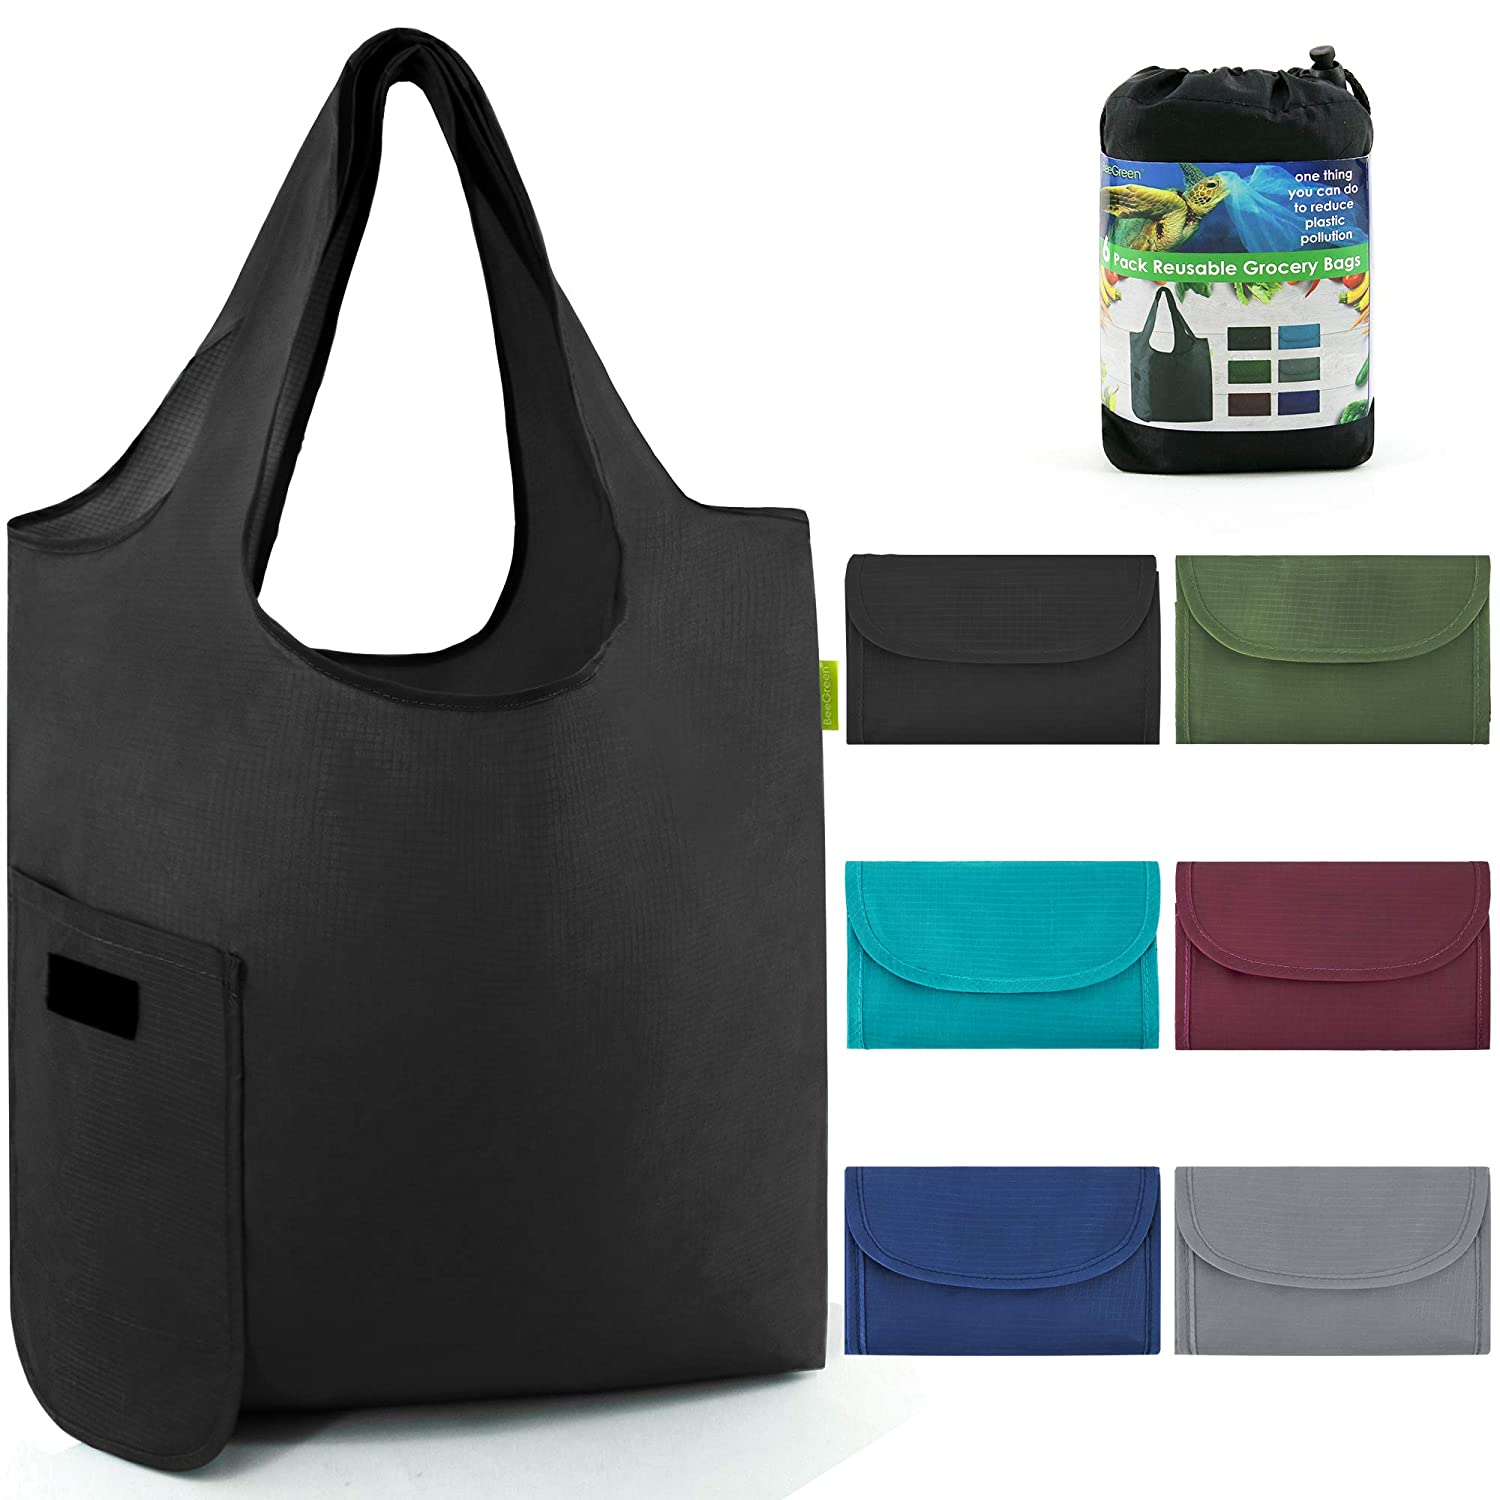 Reusable-Grocery-Shopping-Bags-Foldable With Magic Tape 6 Pack Large 50LBS Easy Fold Reusable Groceries Tote Bags Ripstop Fabric Washable Durable Lightweight Black Grey Navy Teal Moss Maroon